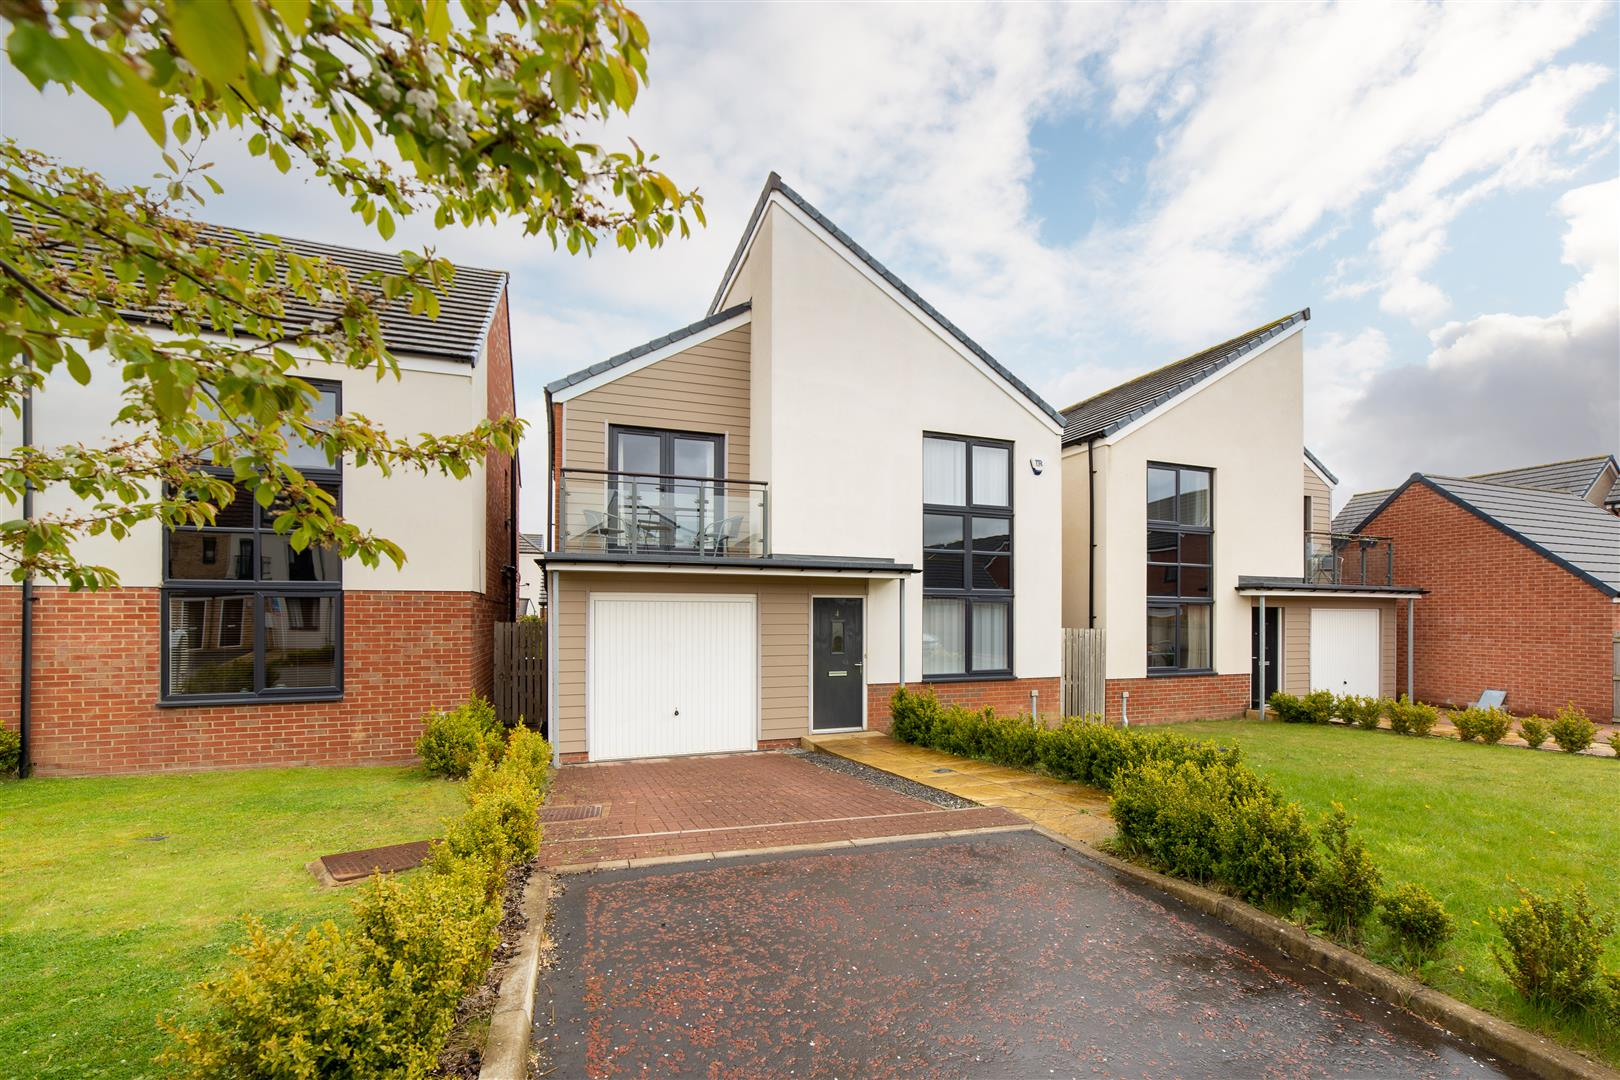 4 bed detached house for sale in Iveston Avenue, Great Park, NE13